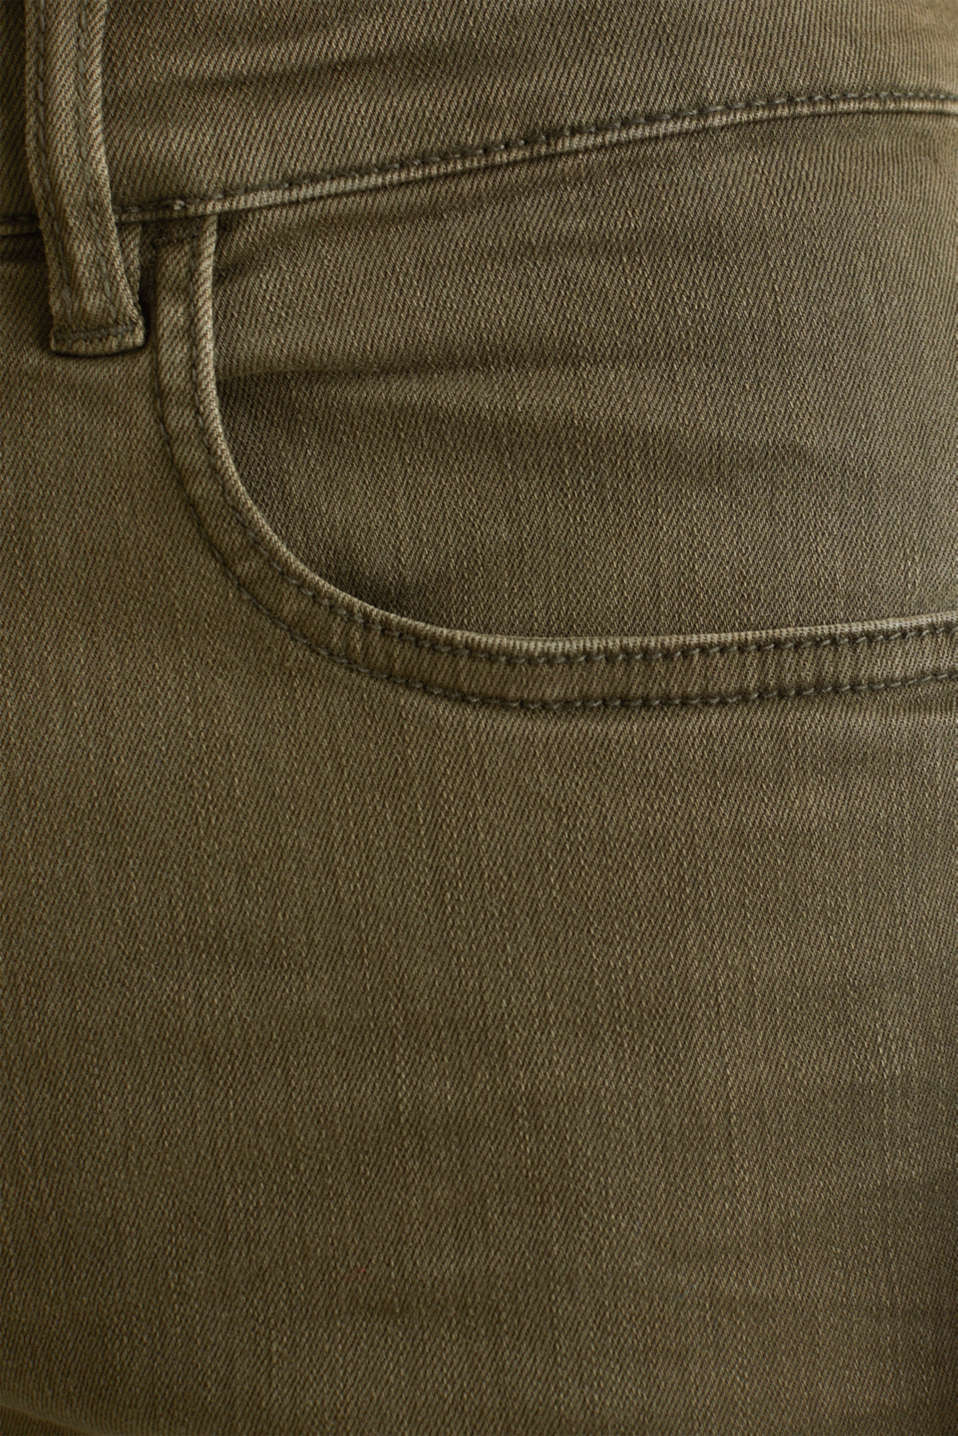 Stretch trousers with wrinkled effects, DARK KHAKI, detail image number 4